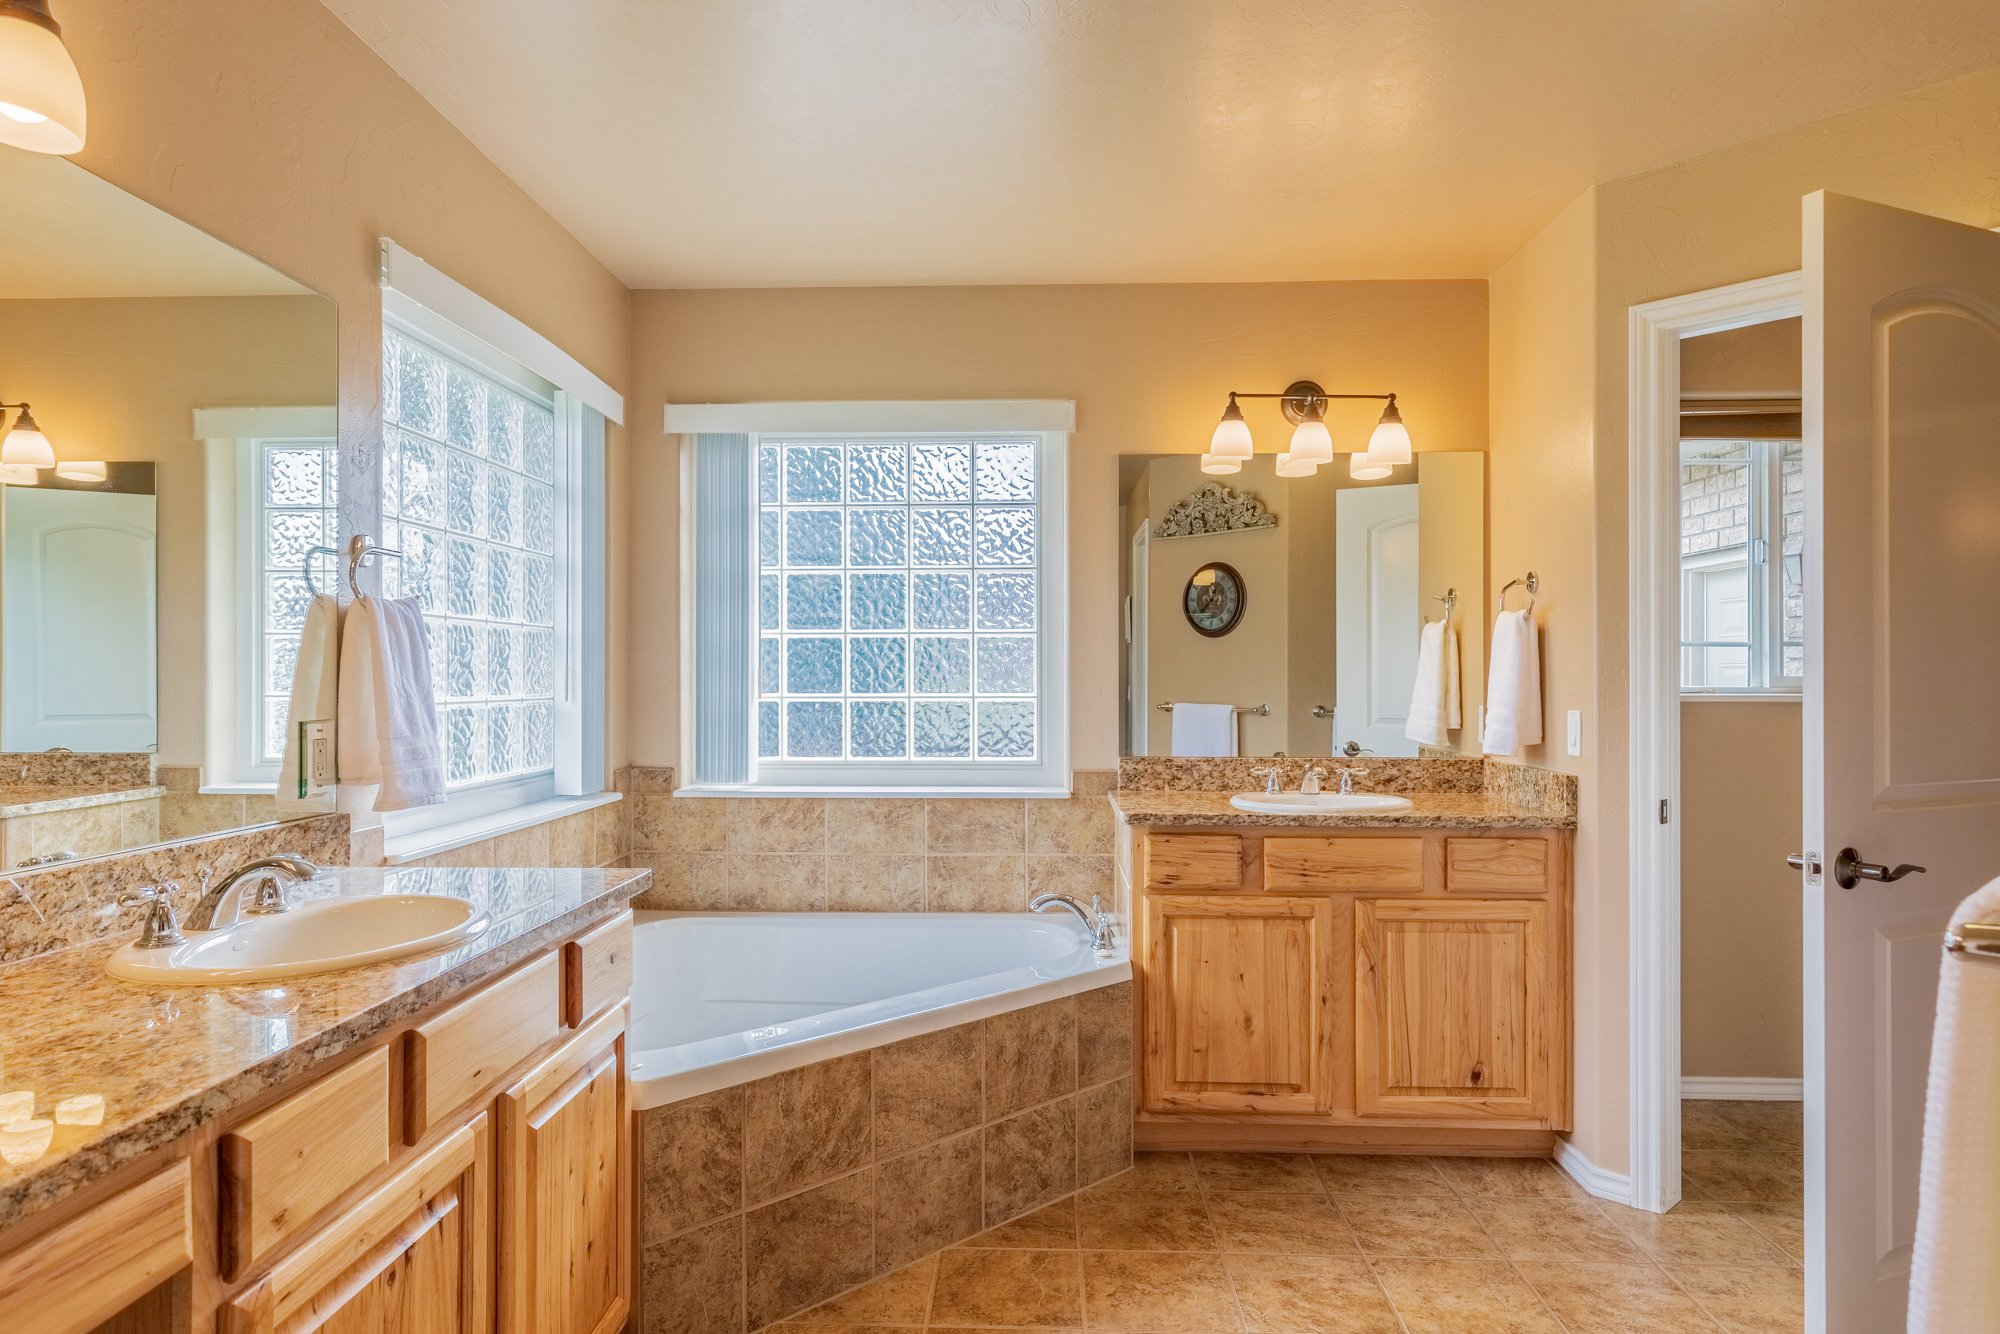 Main Bathroom with Dual Vanities - 2941 Ivy Dr Montrose, CO 81401 - Atha Team Real Estate